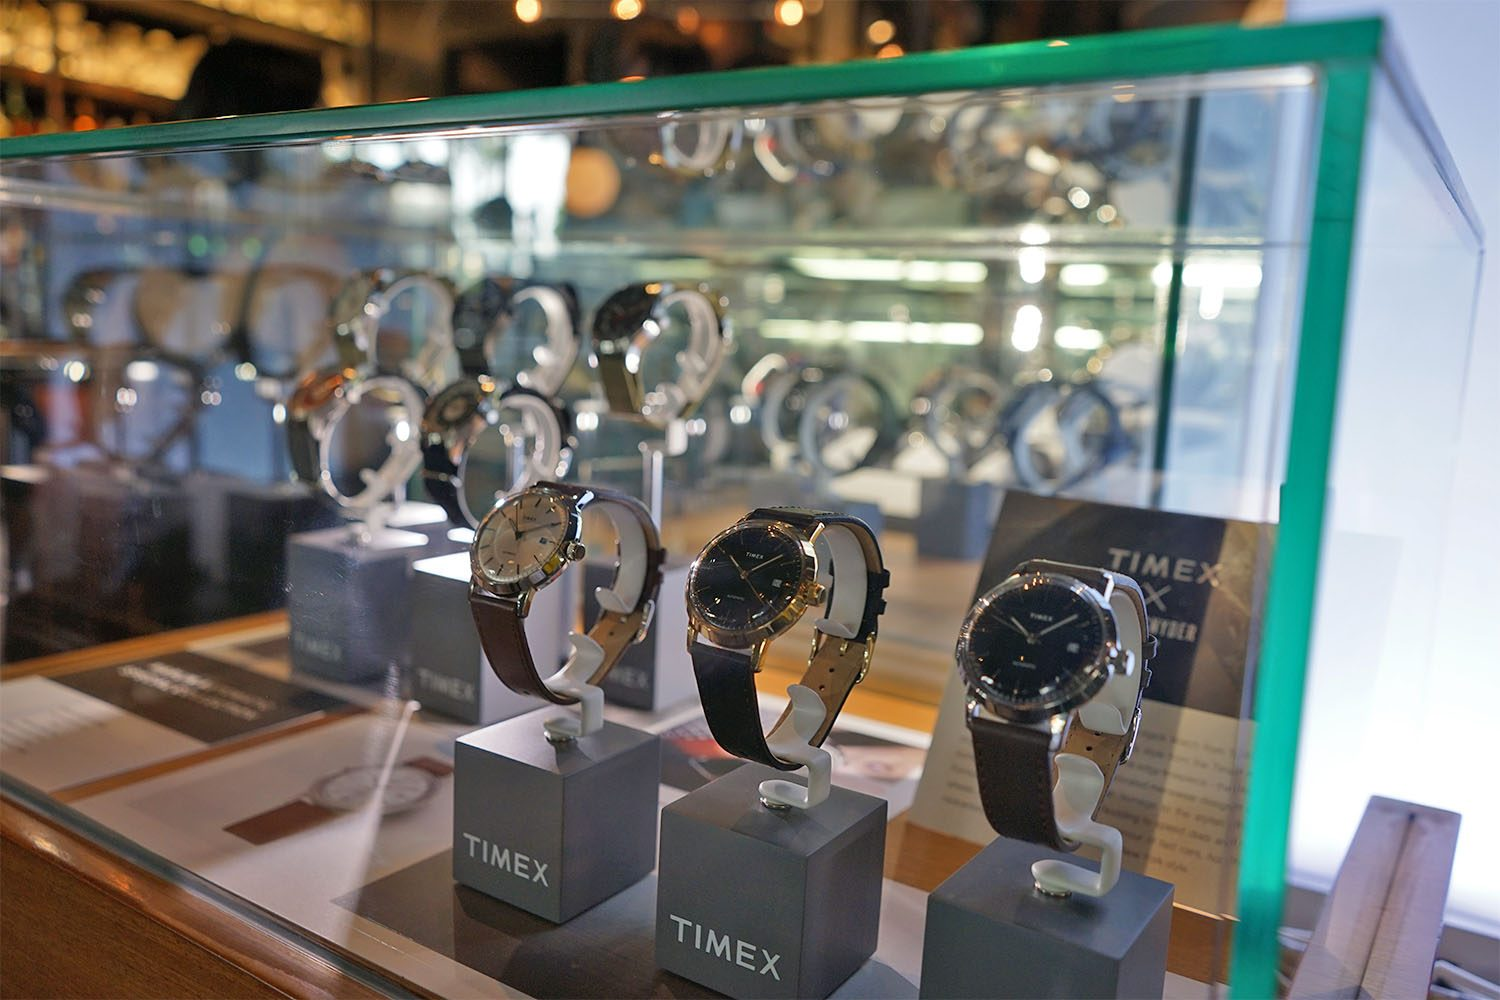 TIMEX INDONESIA GREATEST OF ALL TIME LAUNCHING EVENT 4